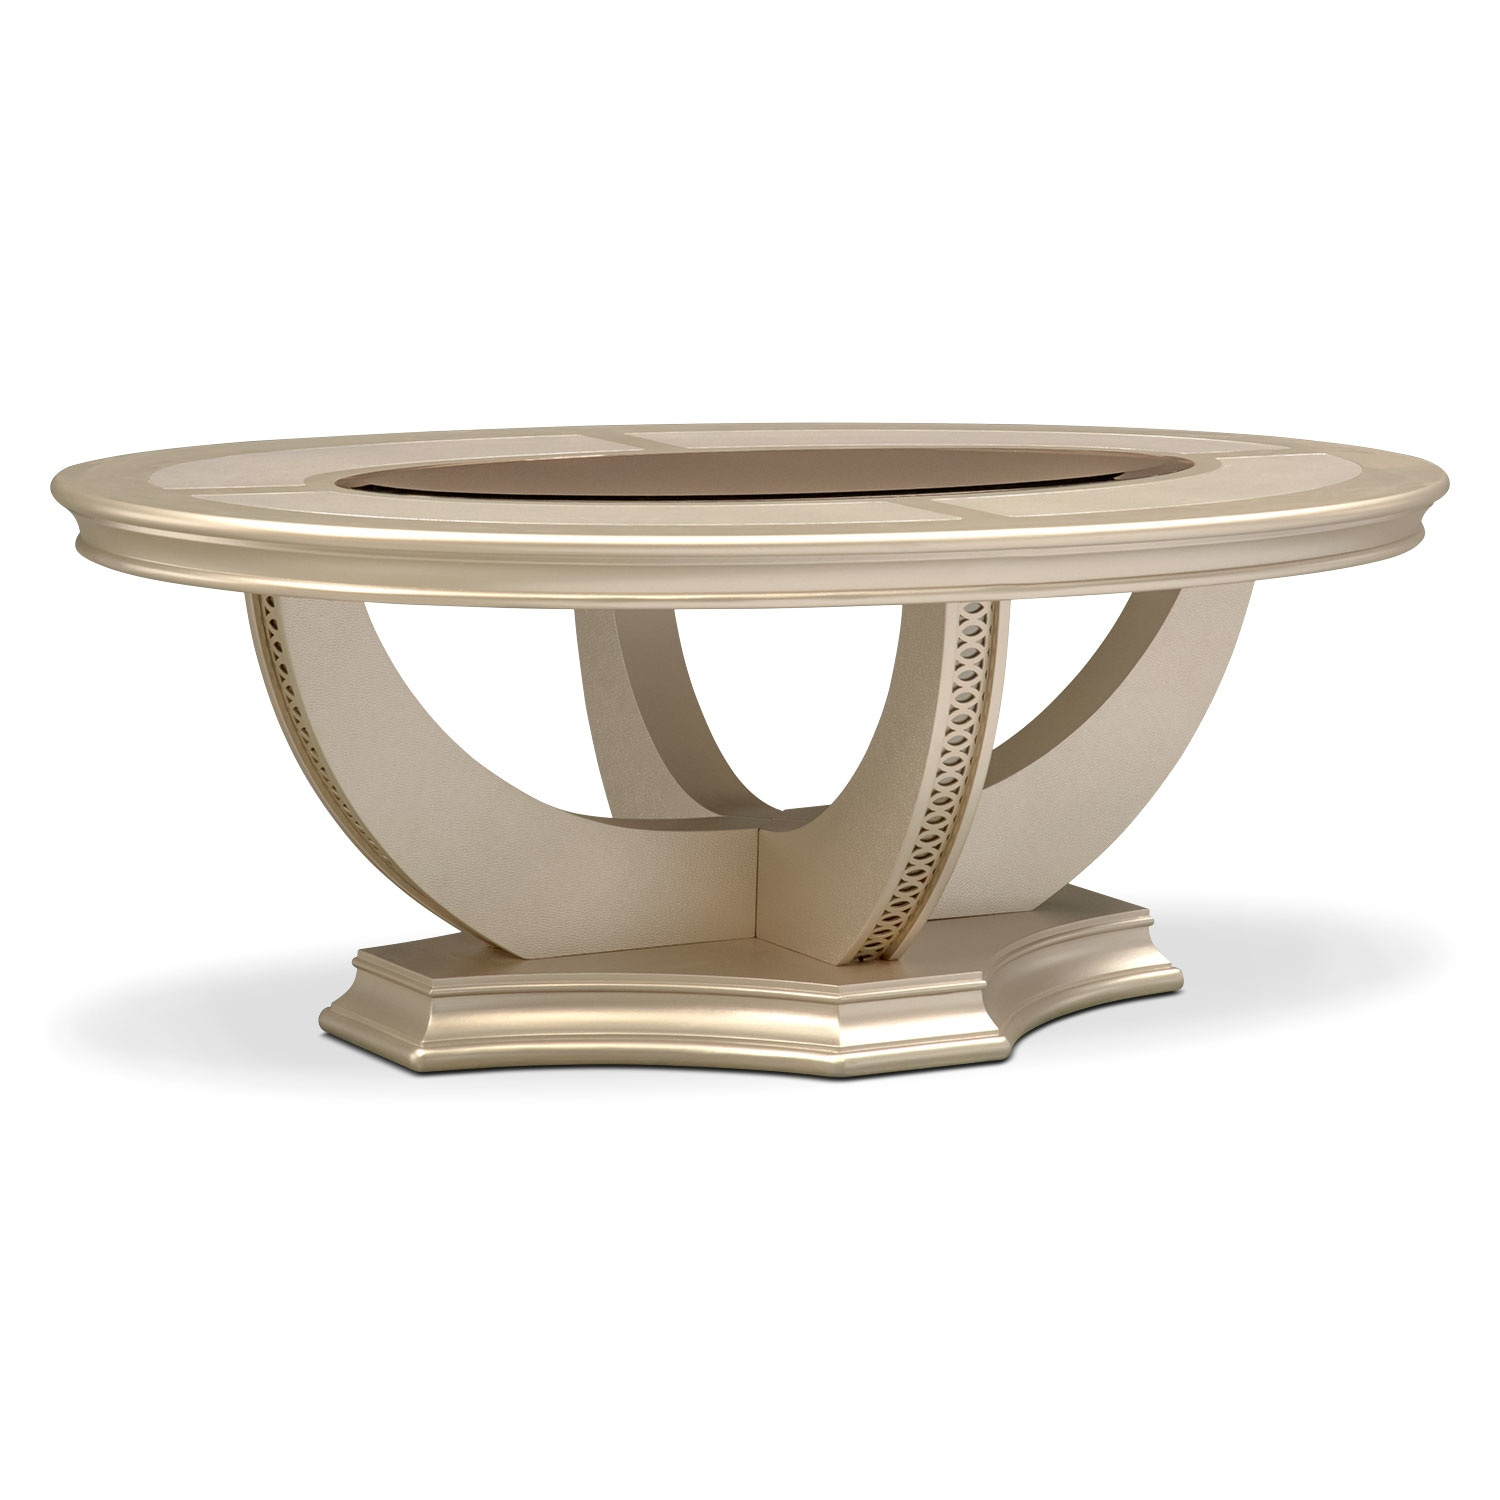 coffee tables living room value city essentials white accent table tap change allegro platinum nautical bathroom vanity lights pier import dining best drum throne with backrest